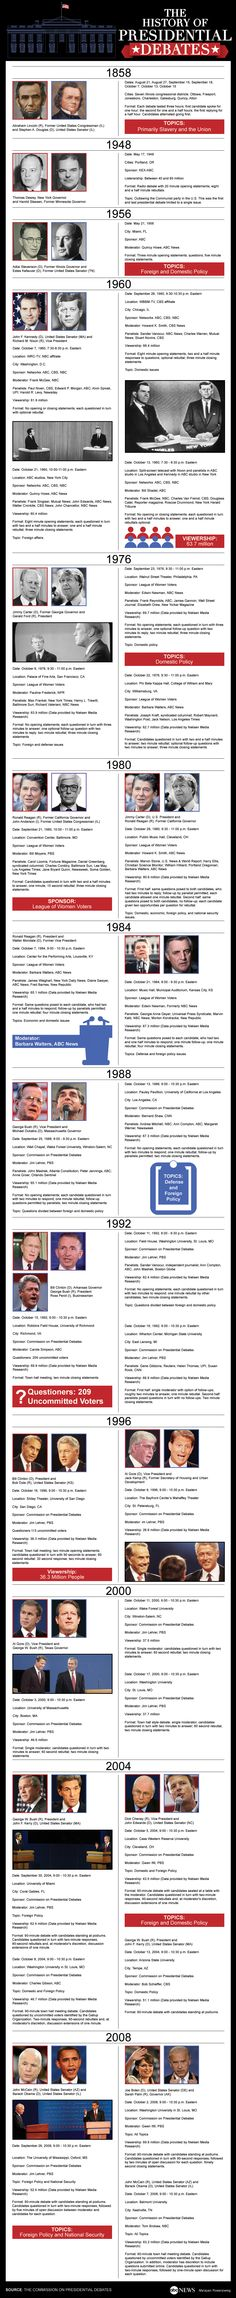 A Look At The History Of Presidential Debates - ABC News